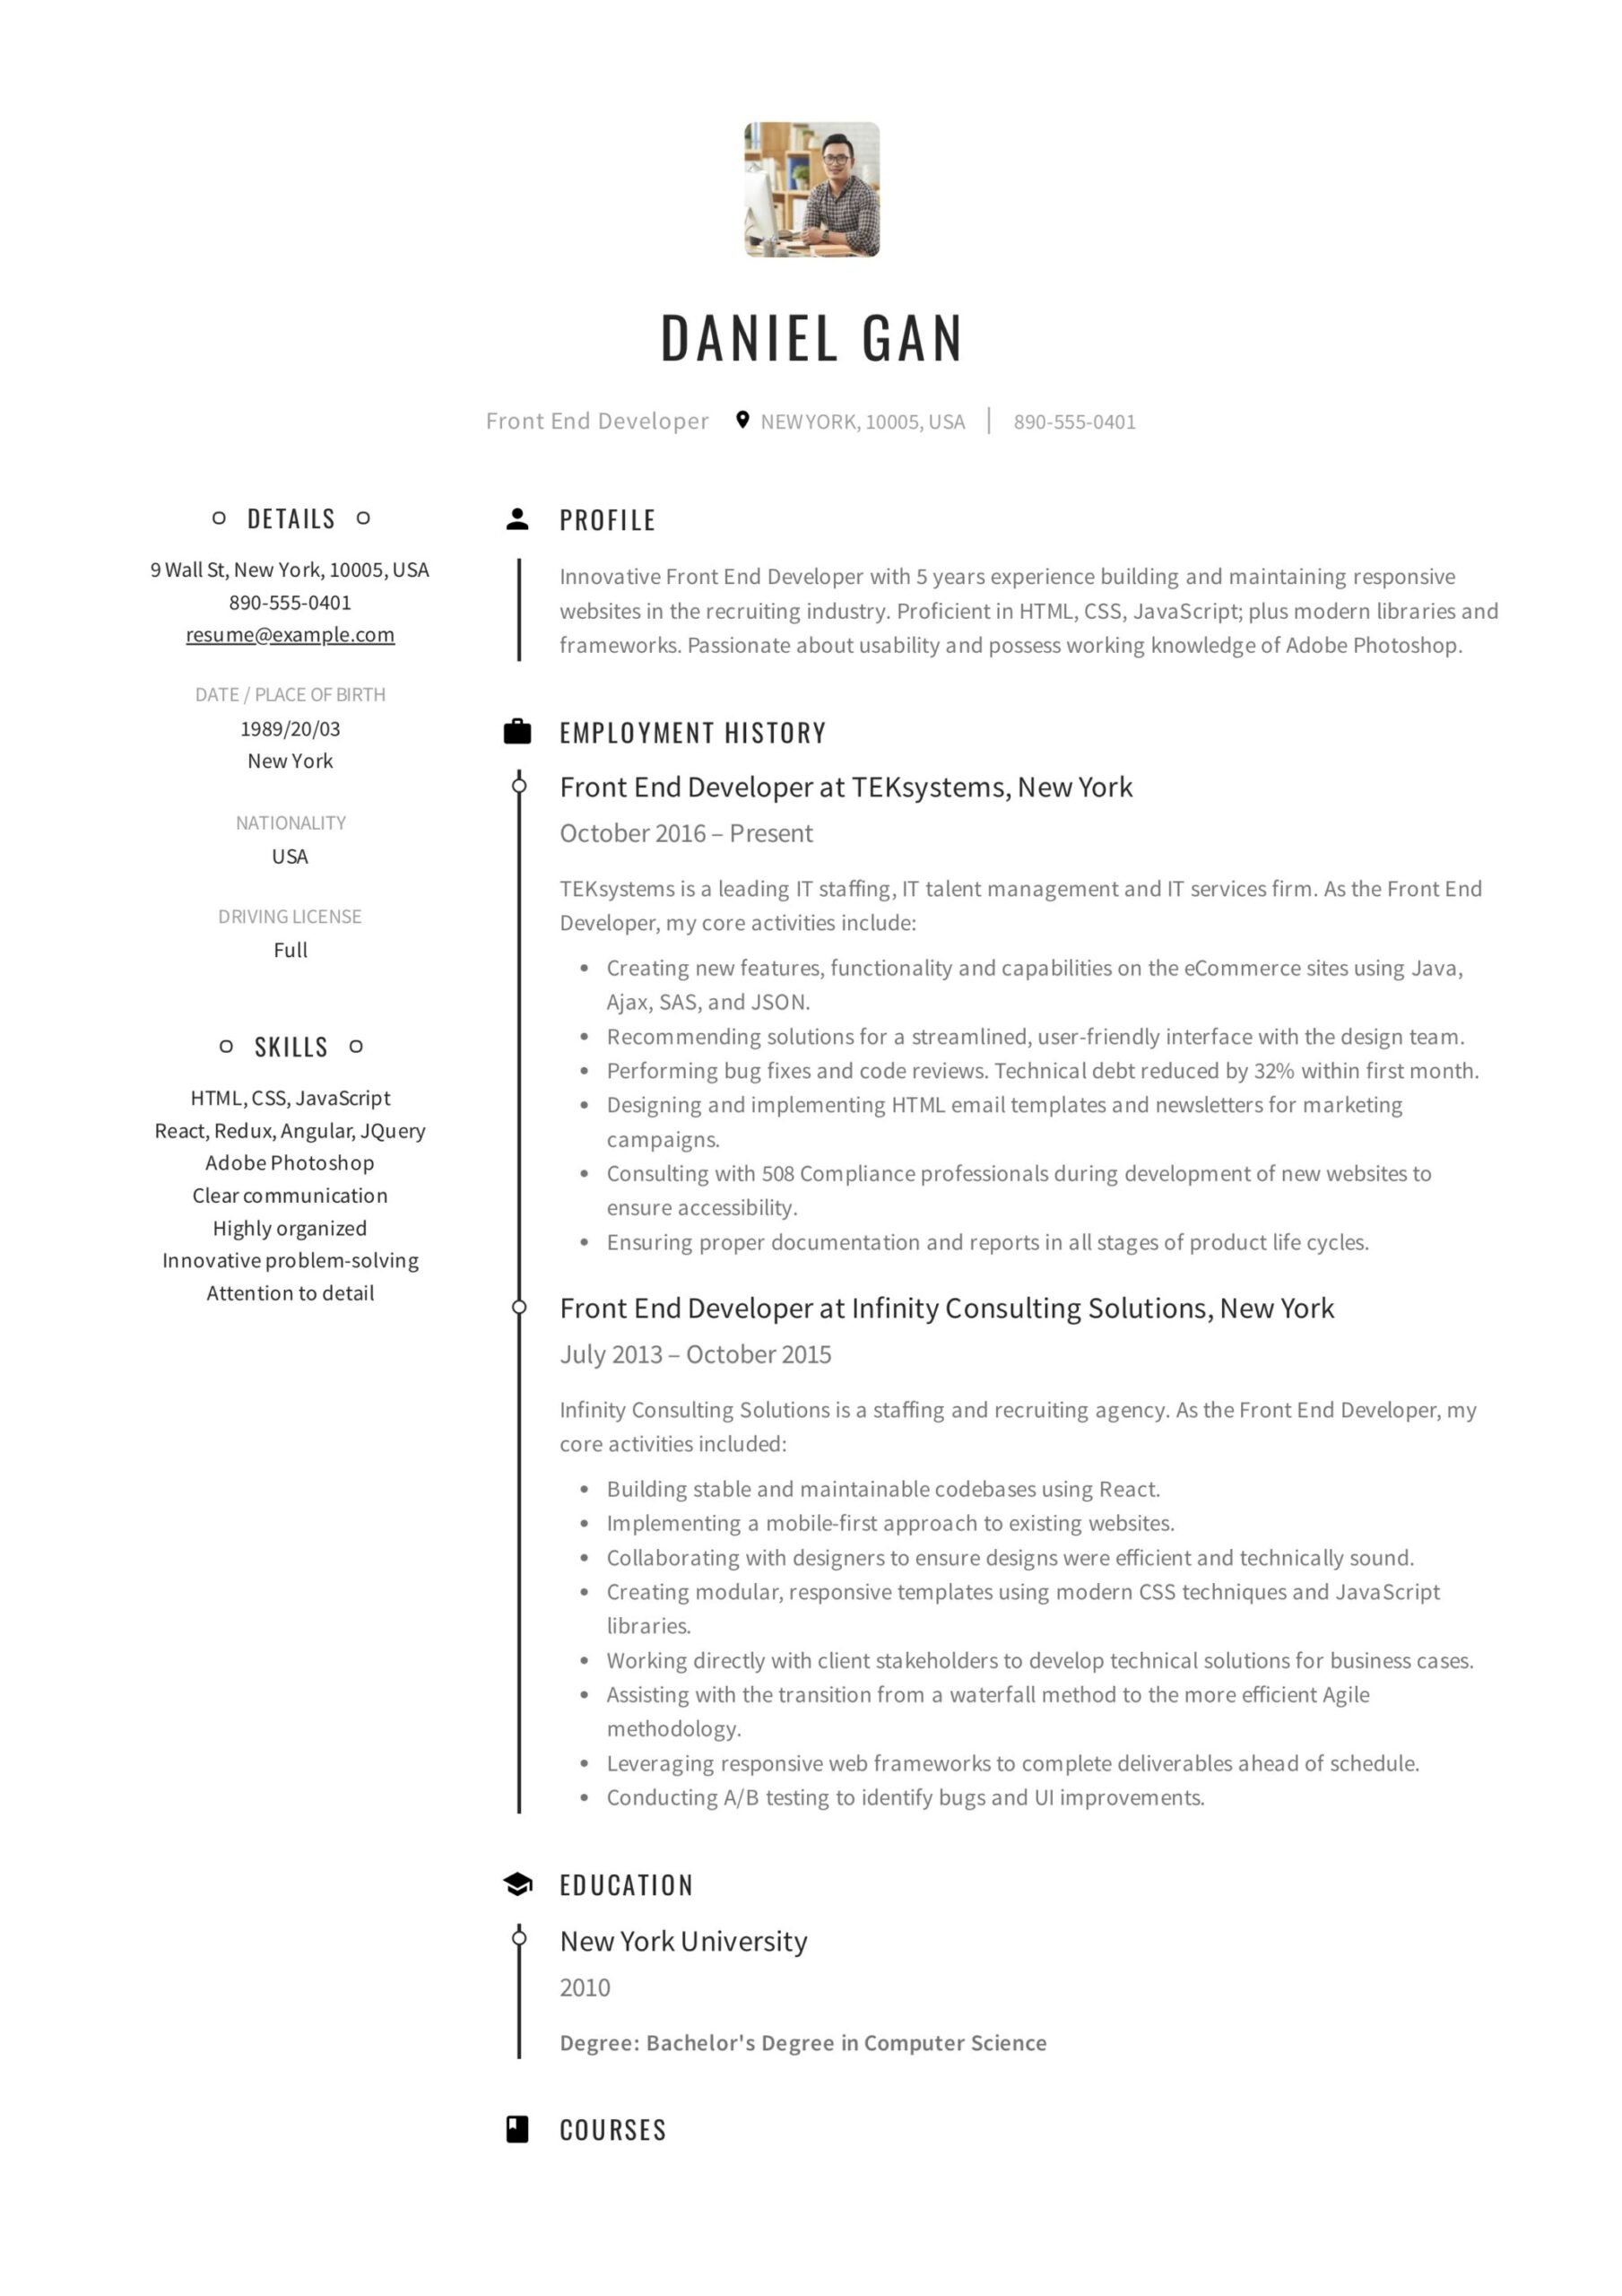 front end developer resume examples guide pdf example daniel gan certified professional Resume Front End Developer Resume Example